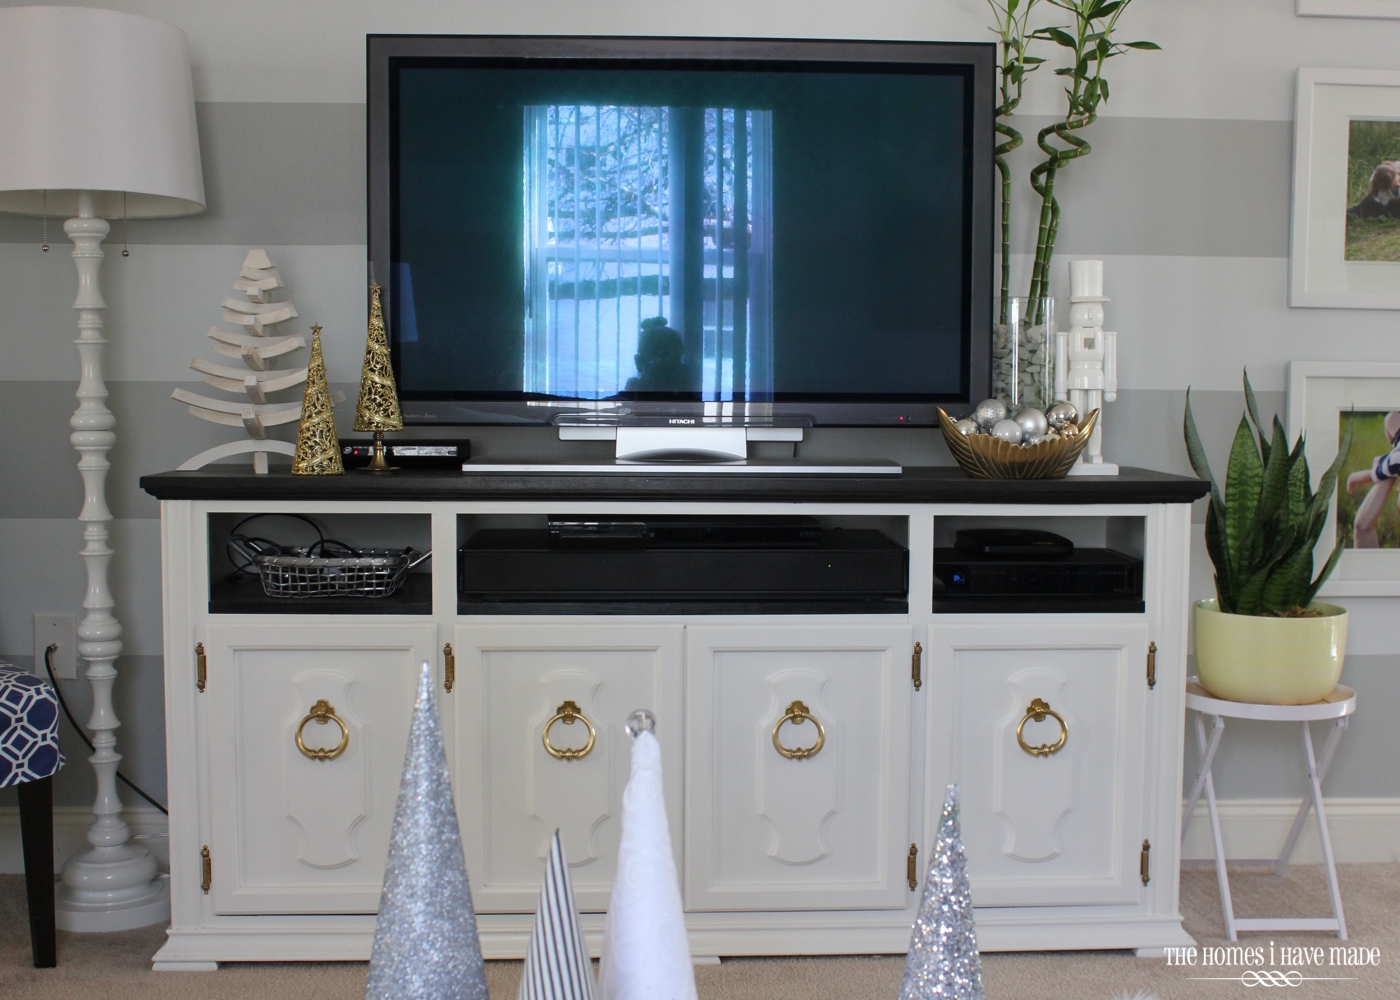 Holiday Home Tour 2014-013